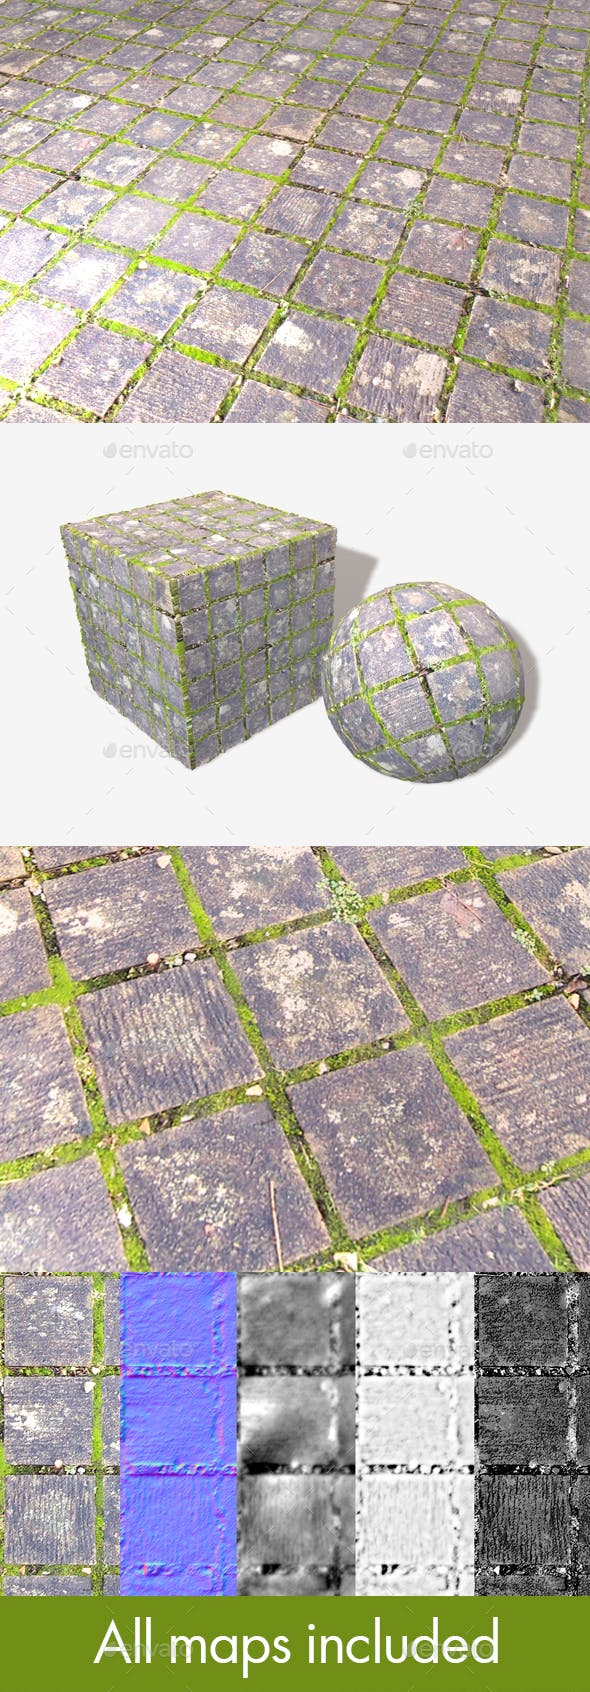 Mossy Square Cobbles Seamless Texture - 3DOcean Item for Sale